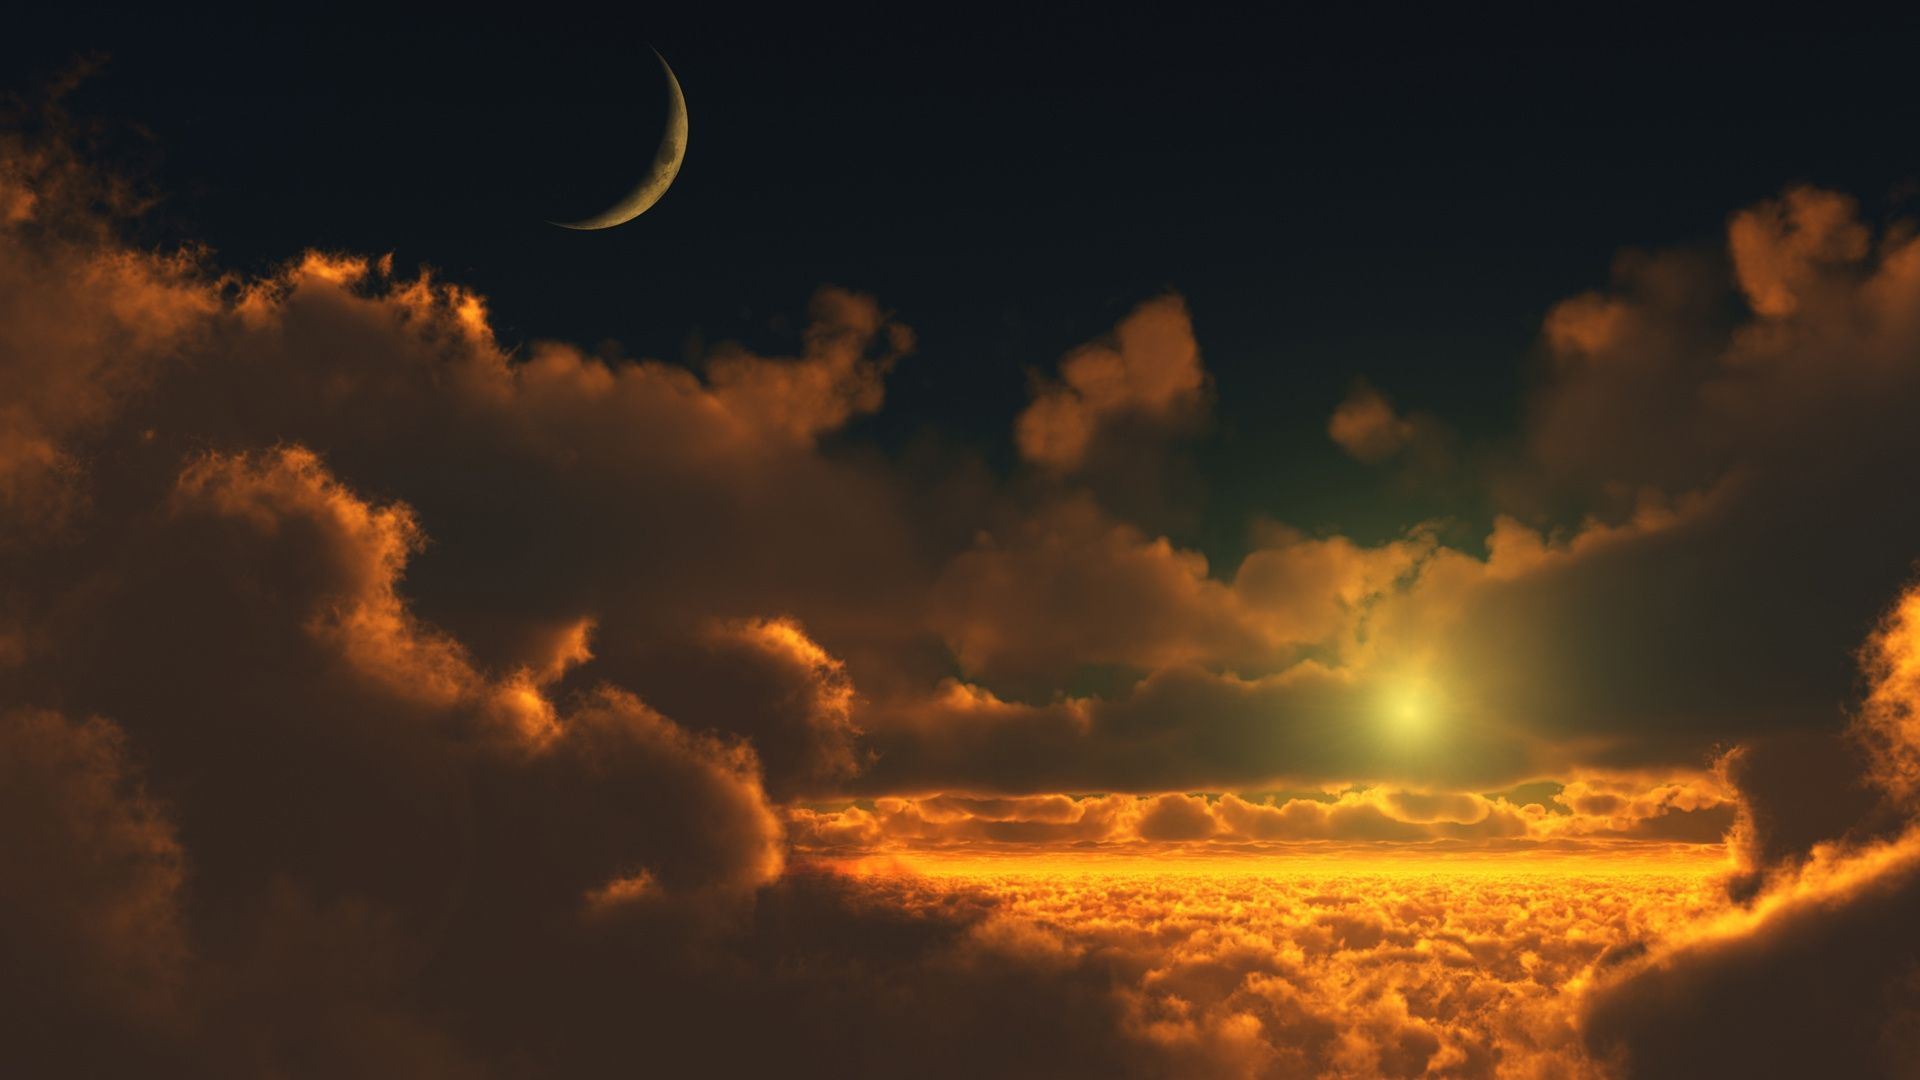 sky, clouds, height - http://www.wallpapers4u.org/sky-clouds-height/